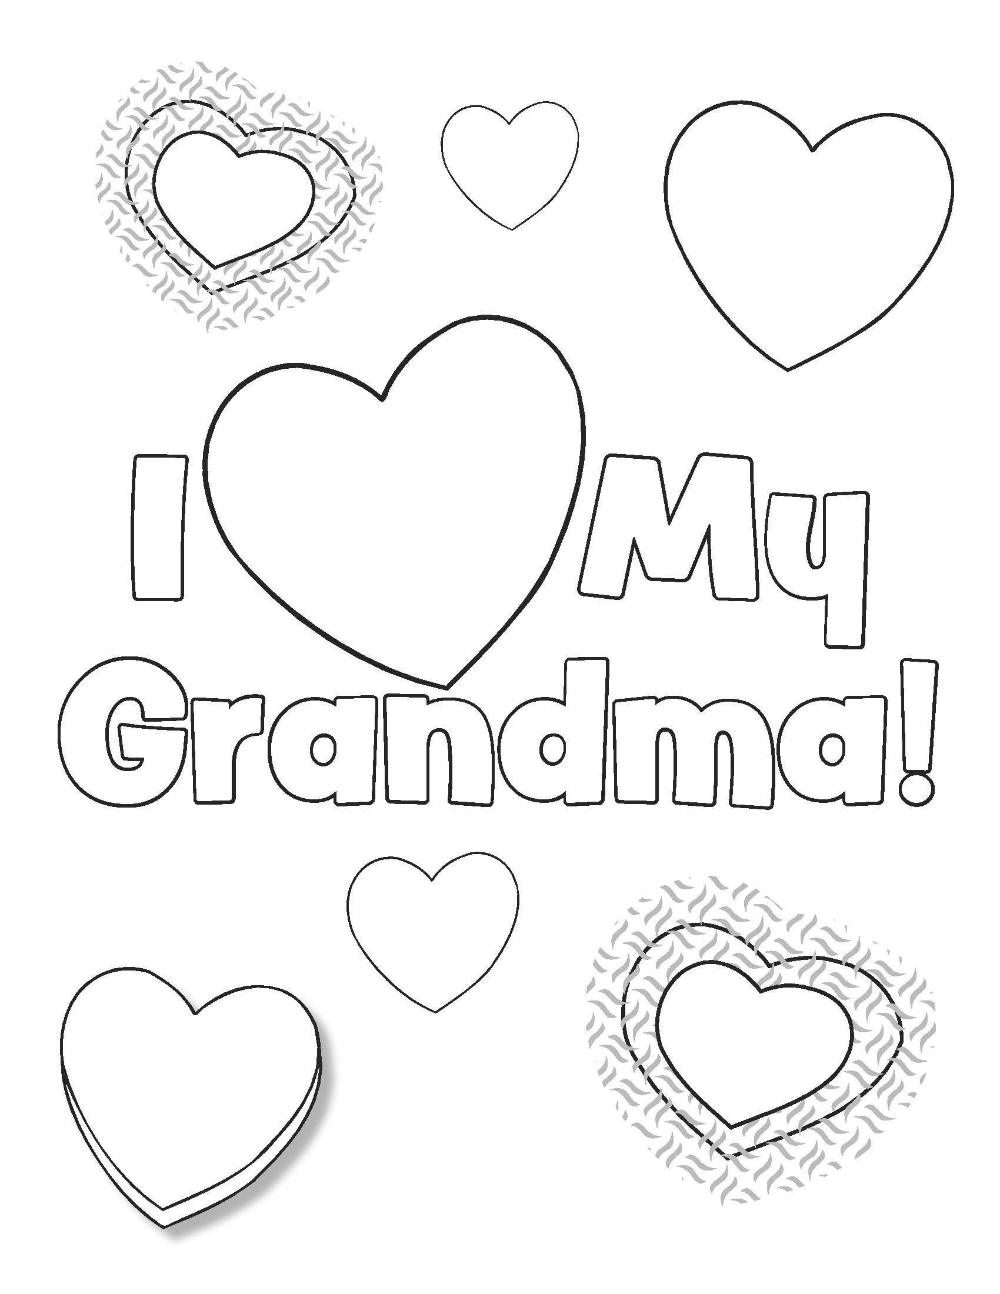 Happy Birthday Grandma Coloring Pages for Kids   Birthday coloring ...